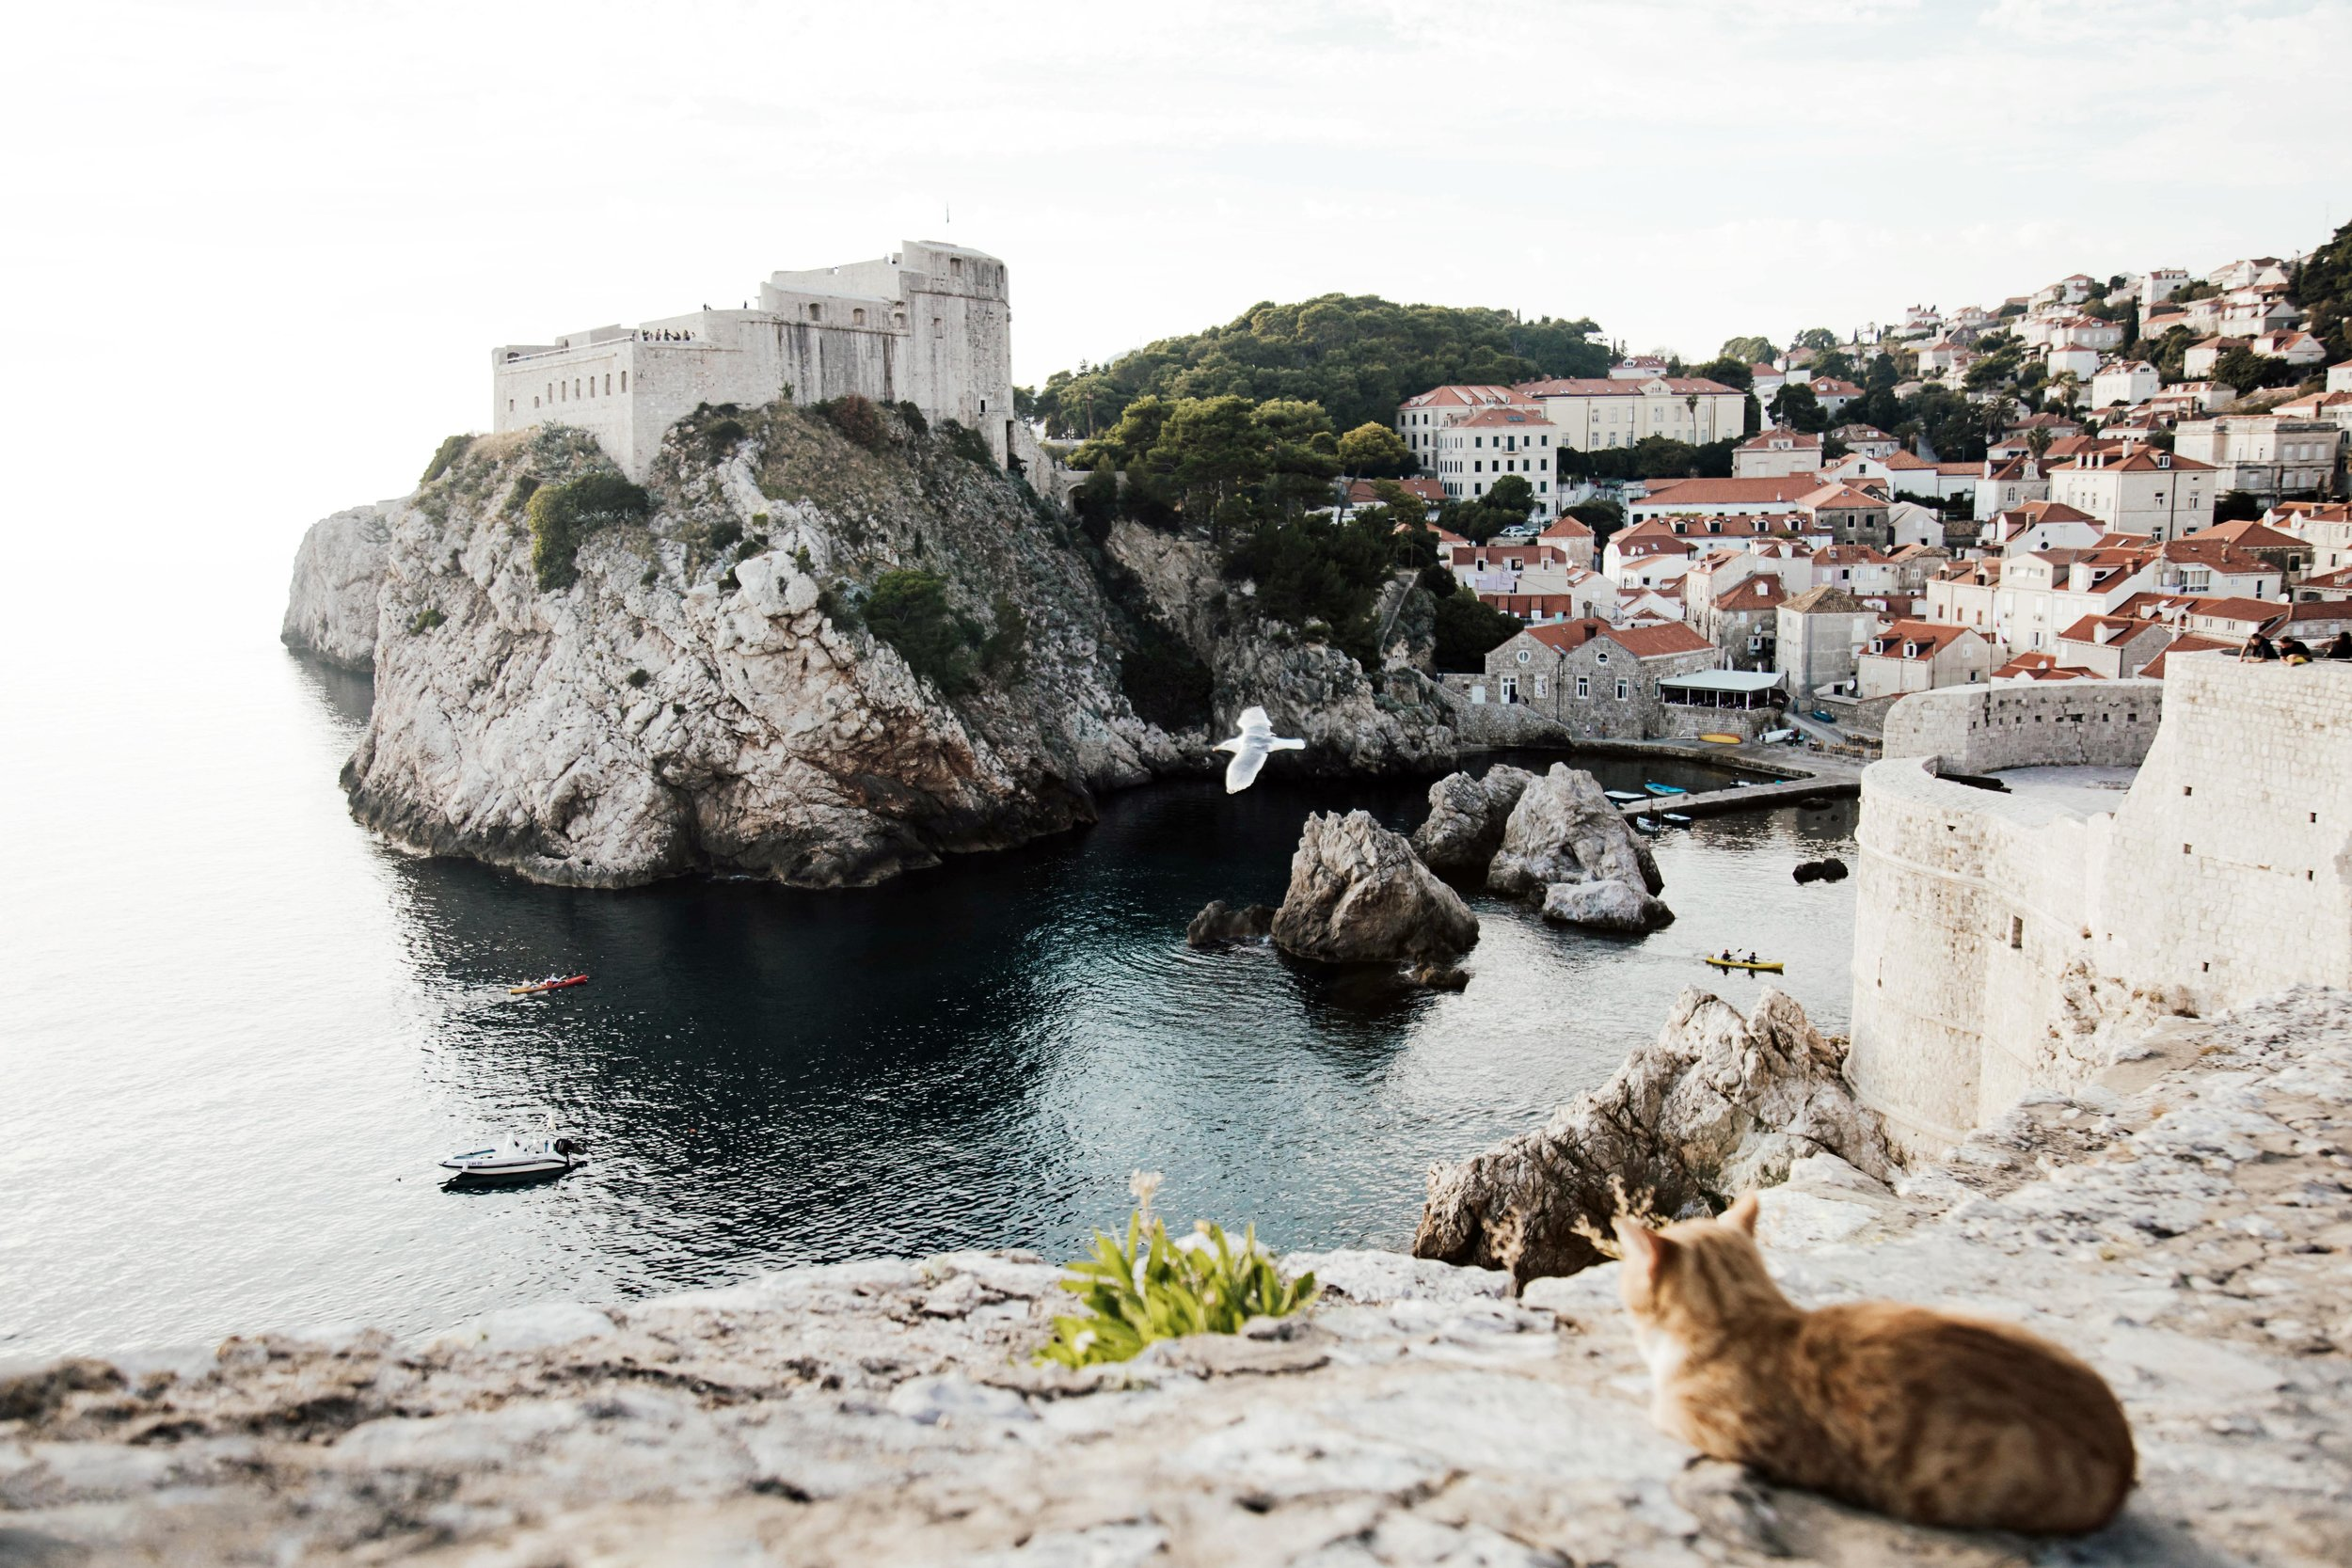 Travel_Photography_1_Dubrovnik-Croatia (67)-min.jpg